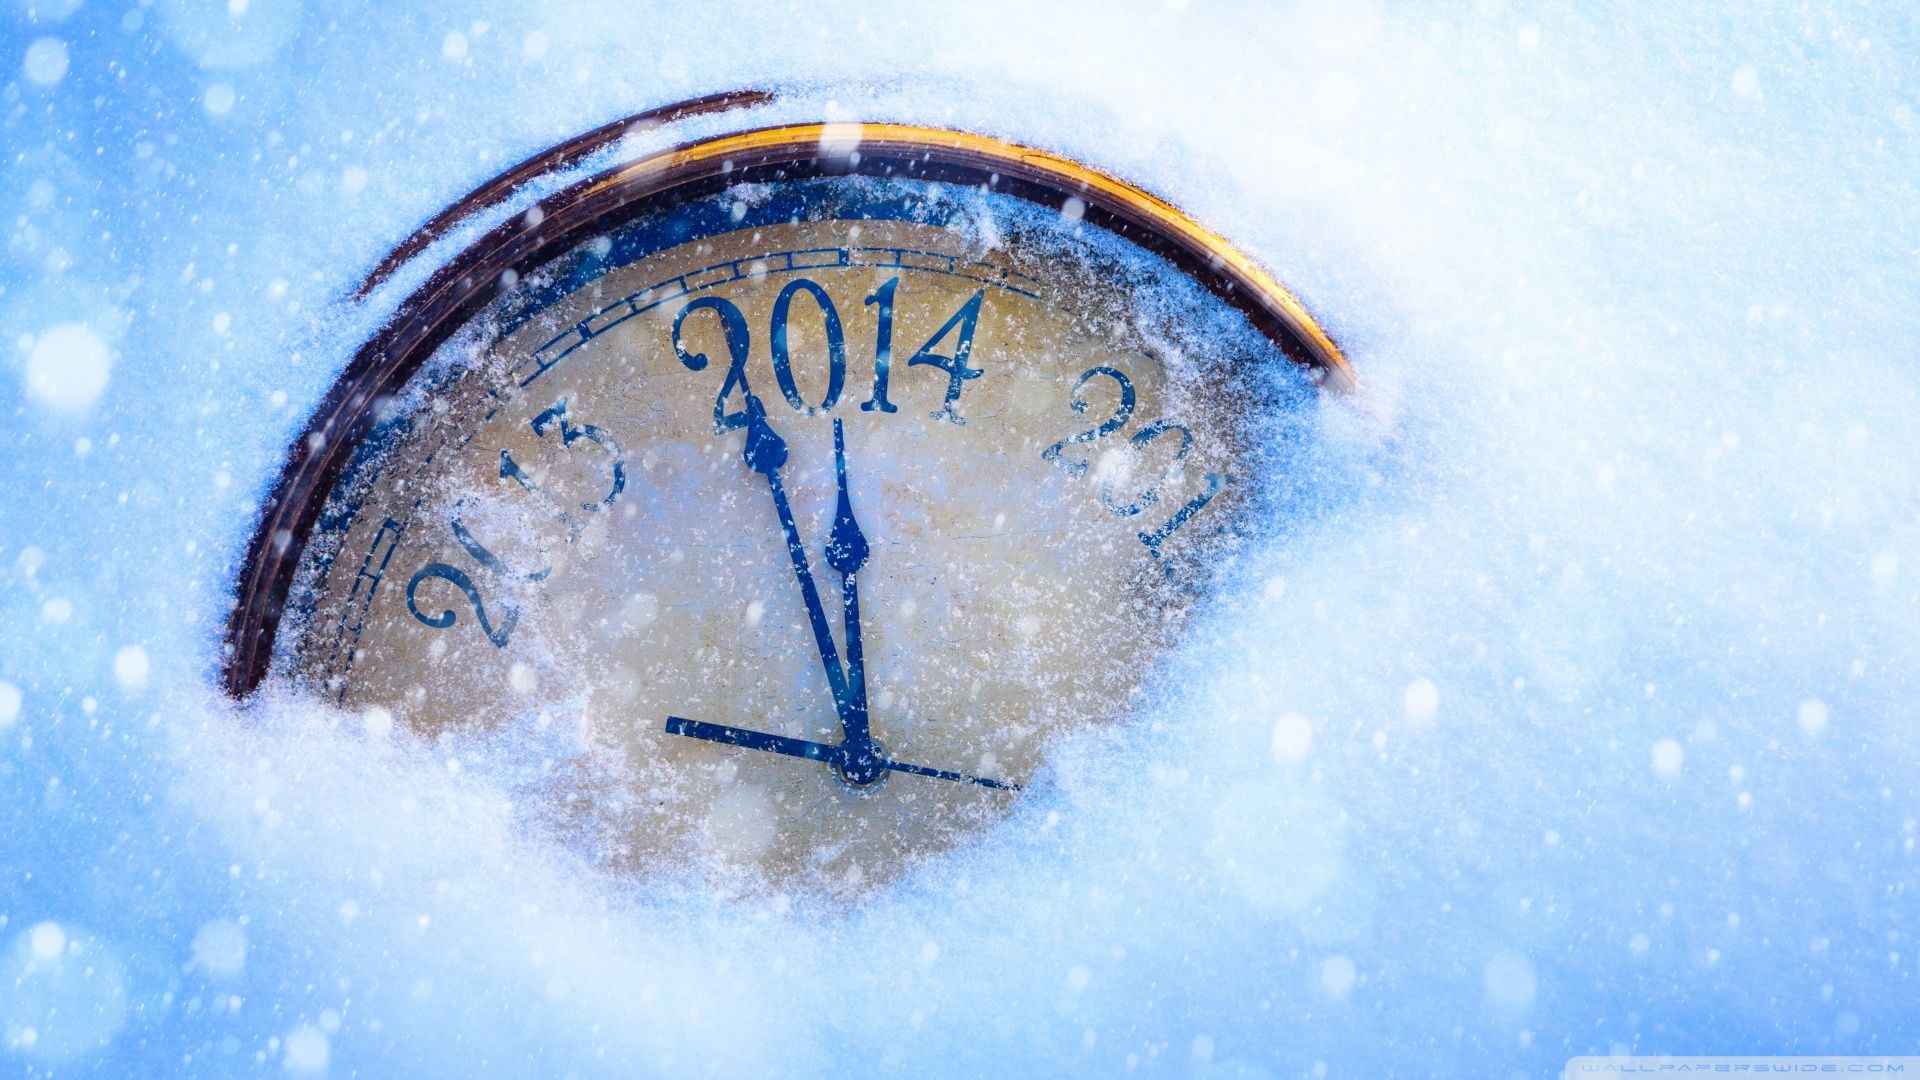 new_years_eve_2014-wallpaper-1920x1080